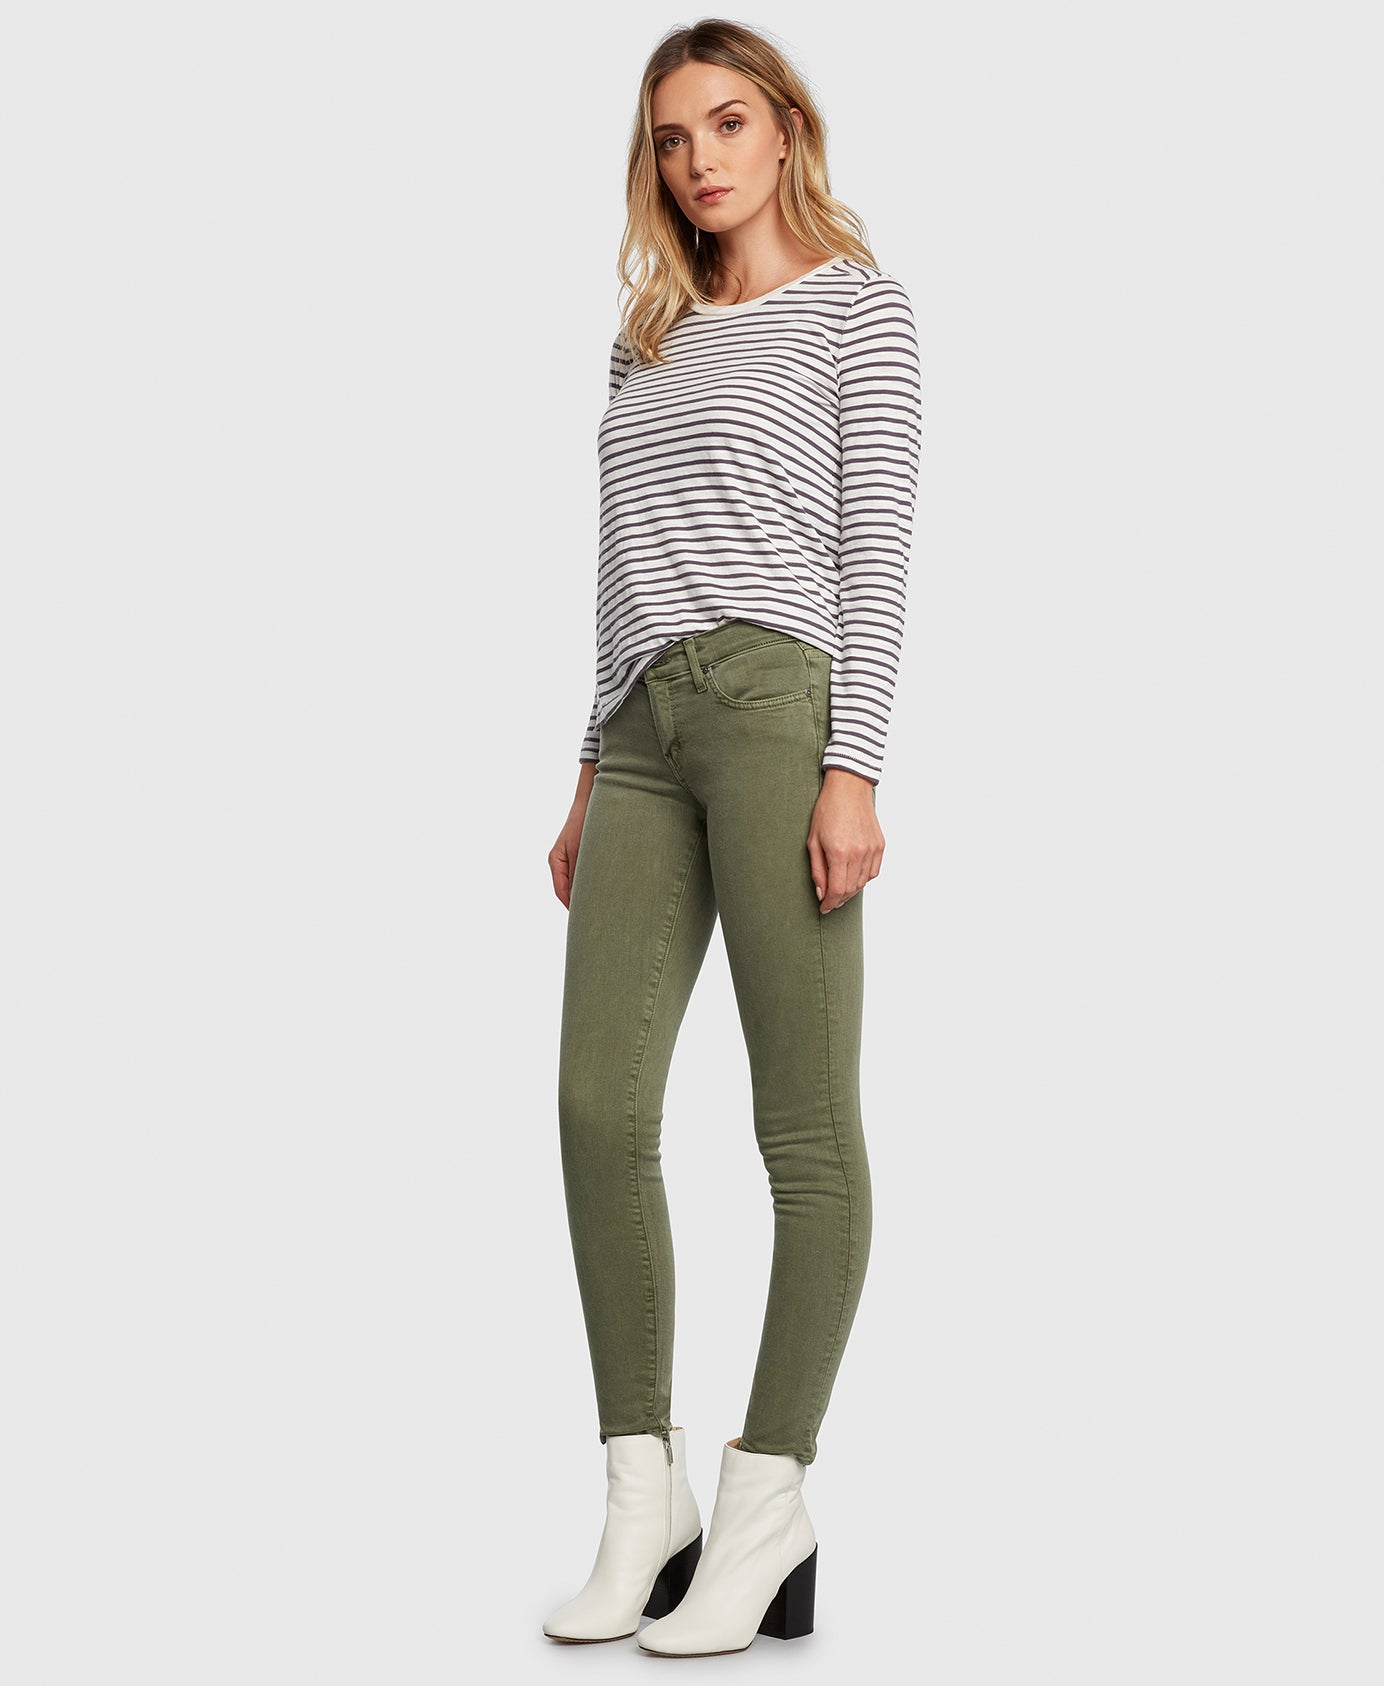 Principle Women's Jeans DREAMER in Eden green twill side